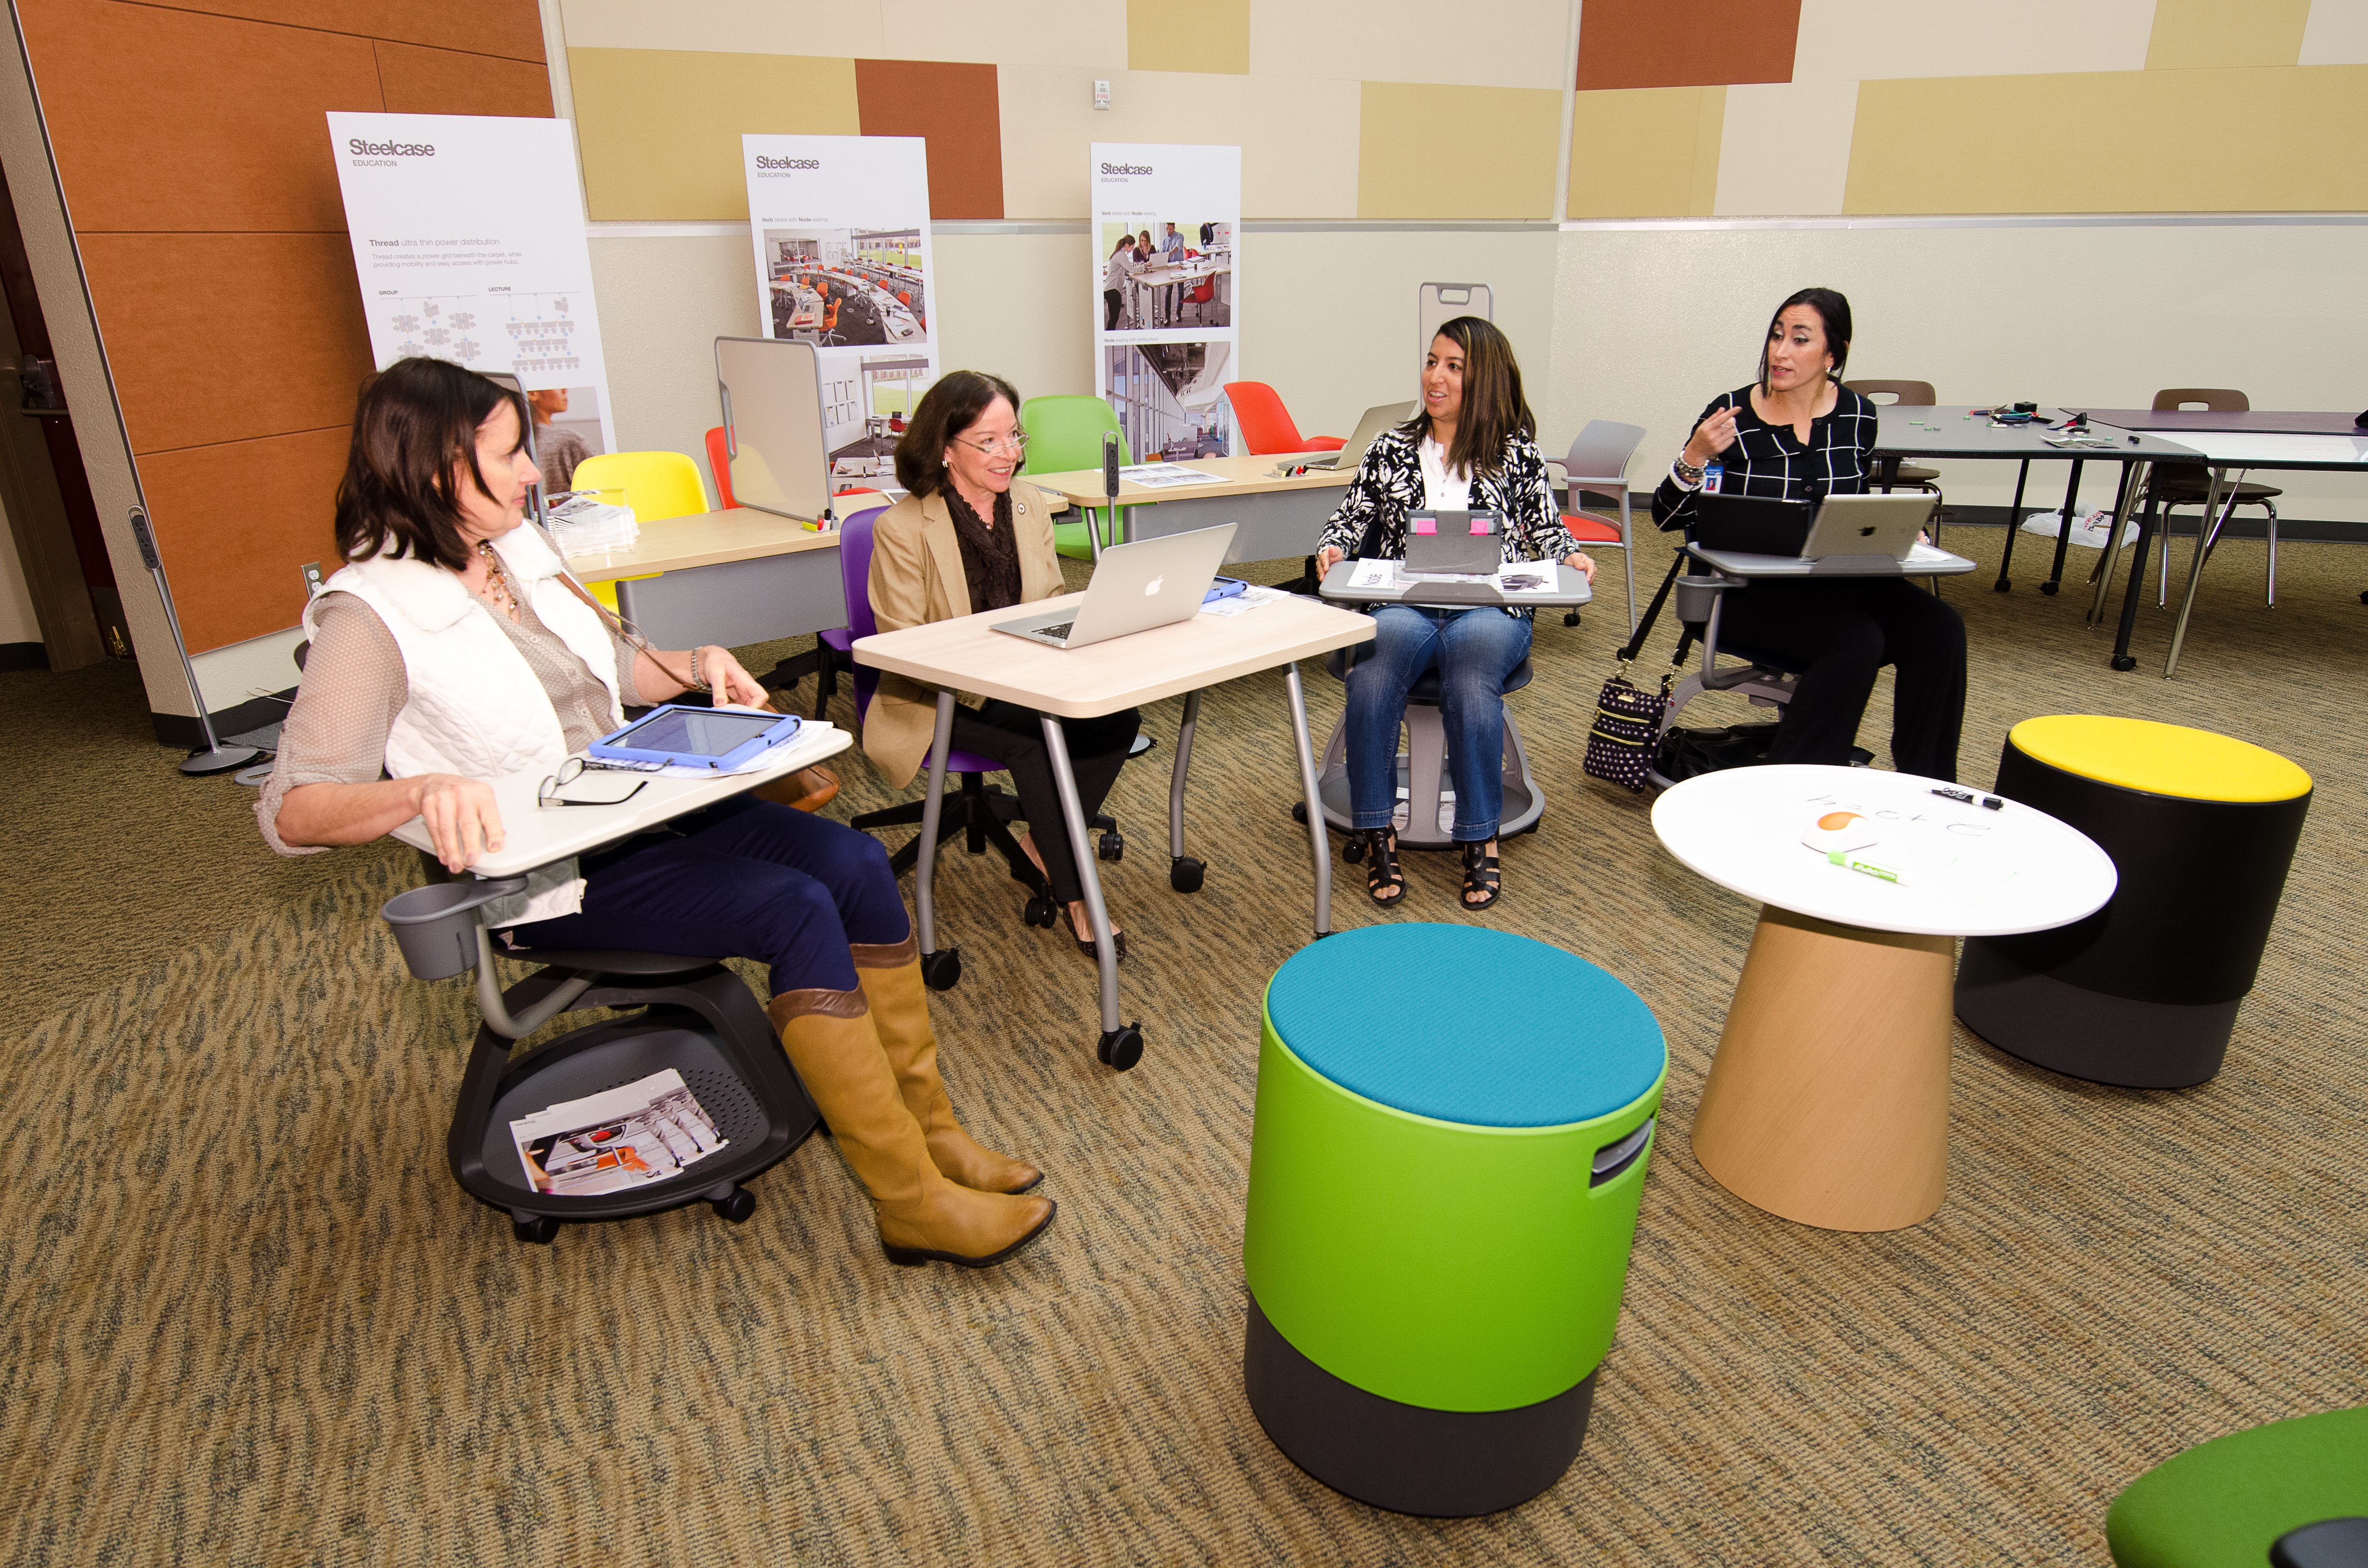 Transforming learning spaces: HCISD to modernize elementary classrooms